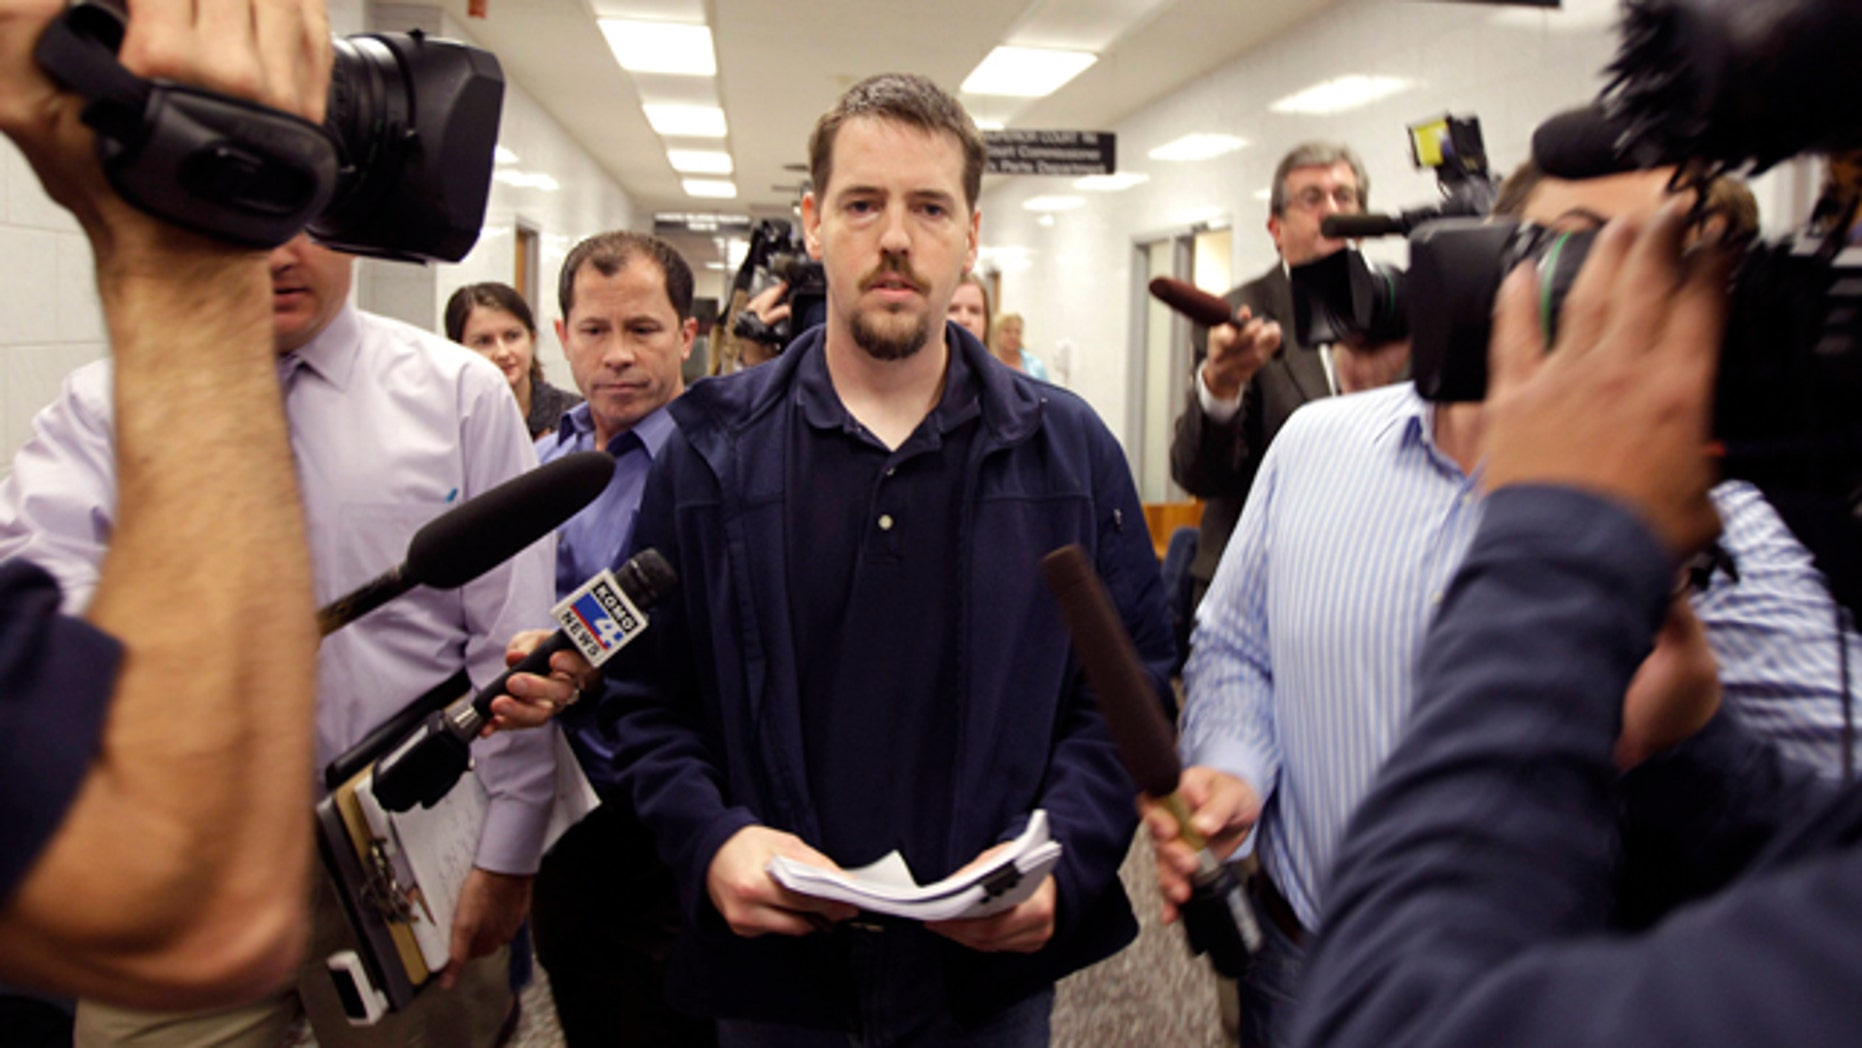 FILE - In this Sept. 23, 2011, file photo, Josh Powell, the husband of missing Utah woman Susan Powell, is surrounded by reporters as he leaves a Pierce County courtroom in Tacoma, Wash. FBI documents say investigators found child pornography on Powell's computer at least 17 months before he killed his children and himself. (AP Photo/Ted S. Warren, File)